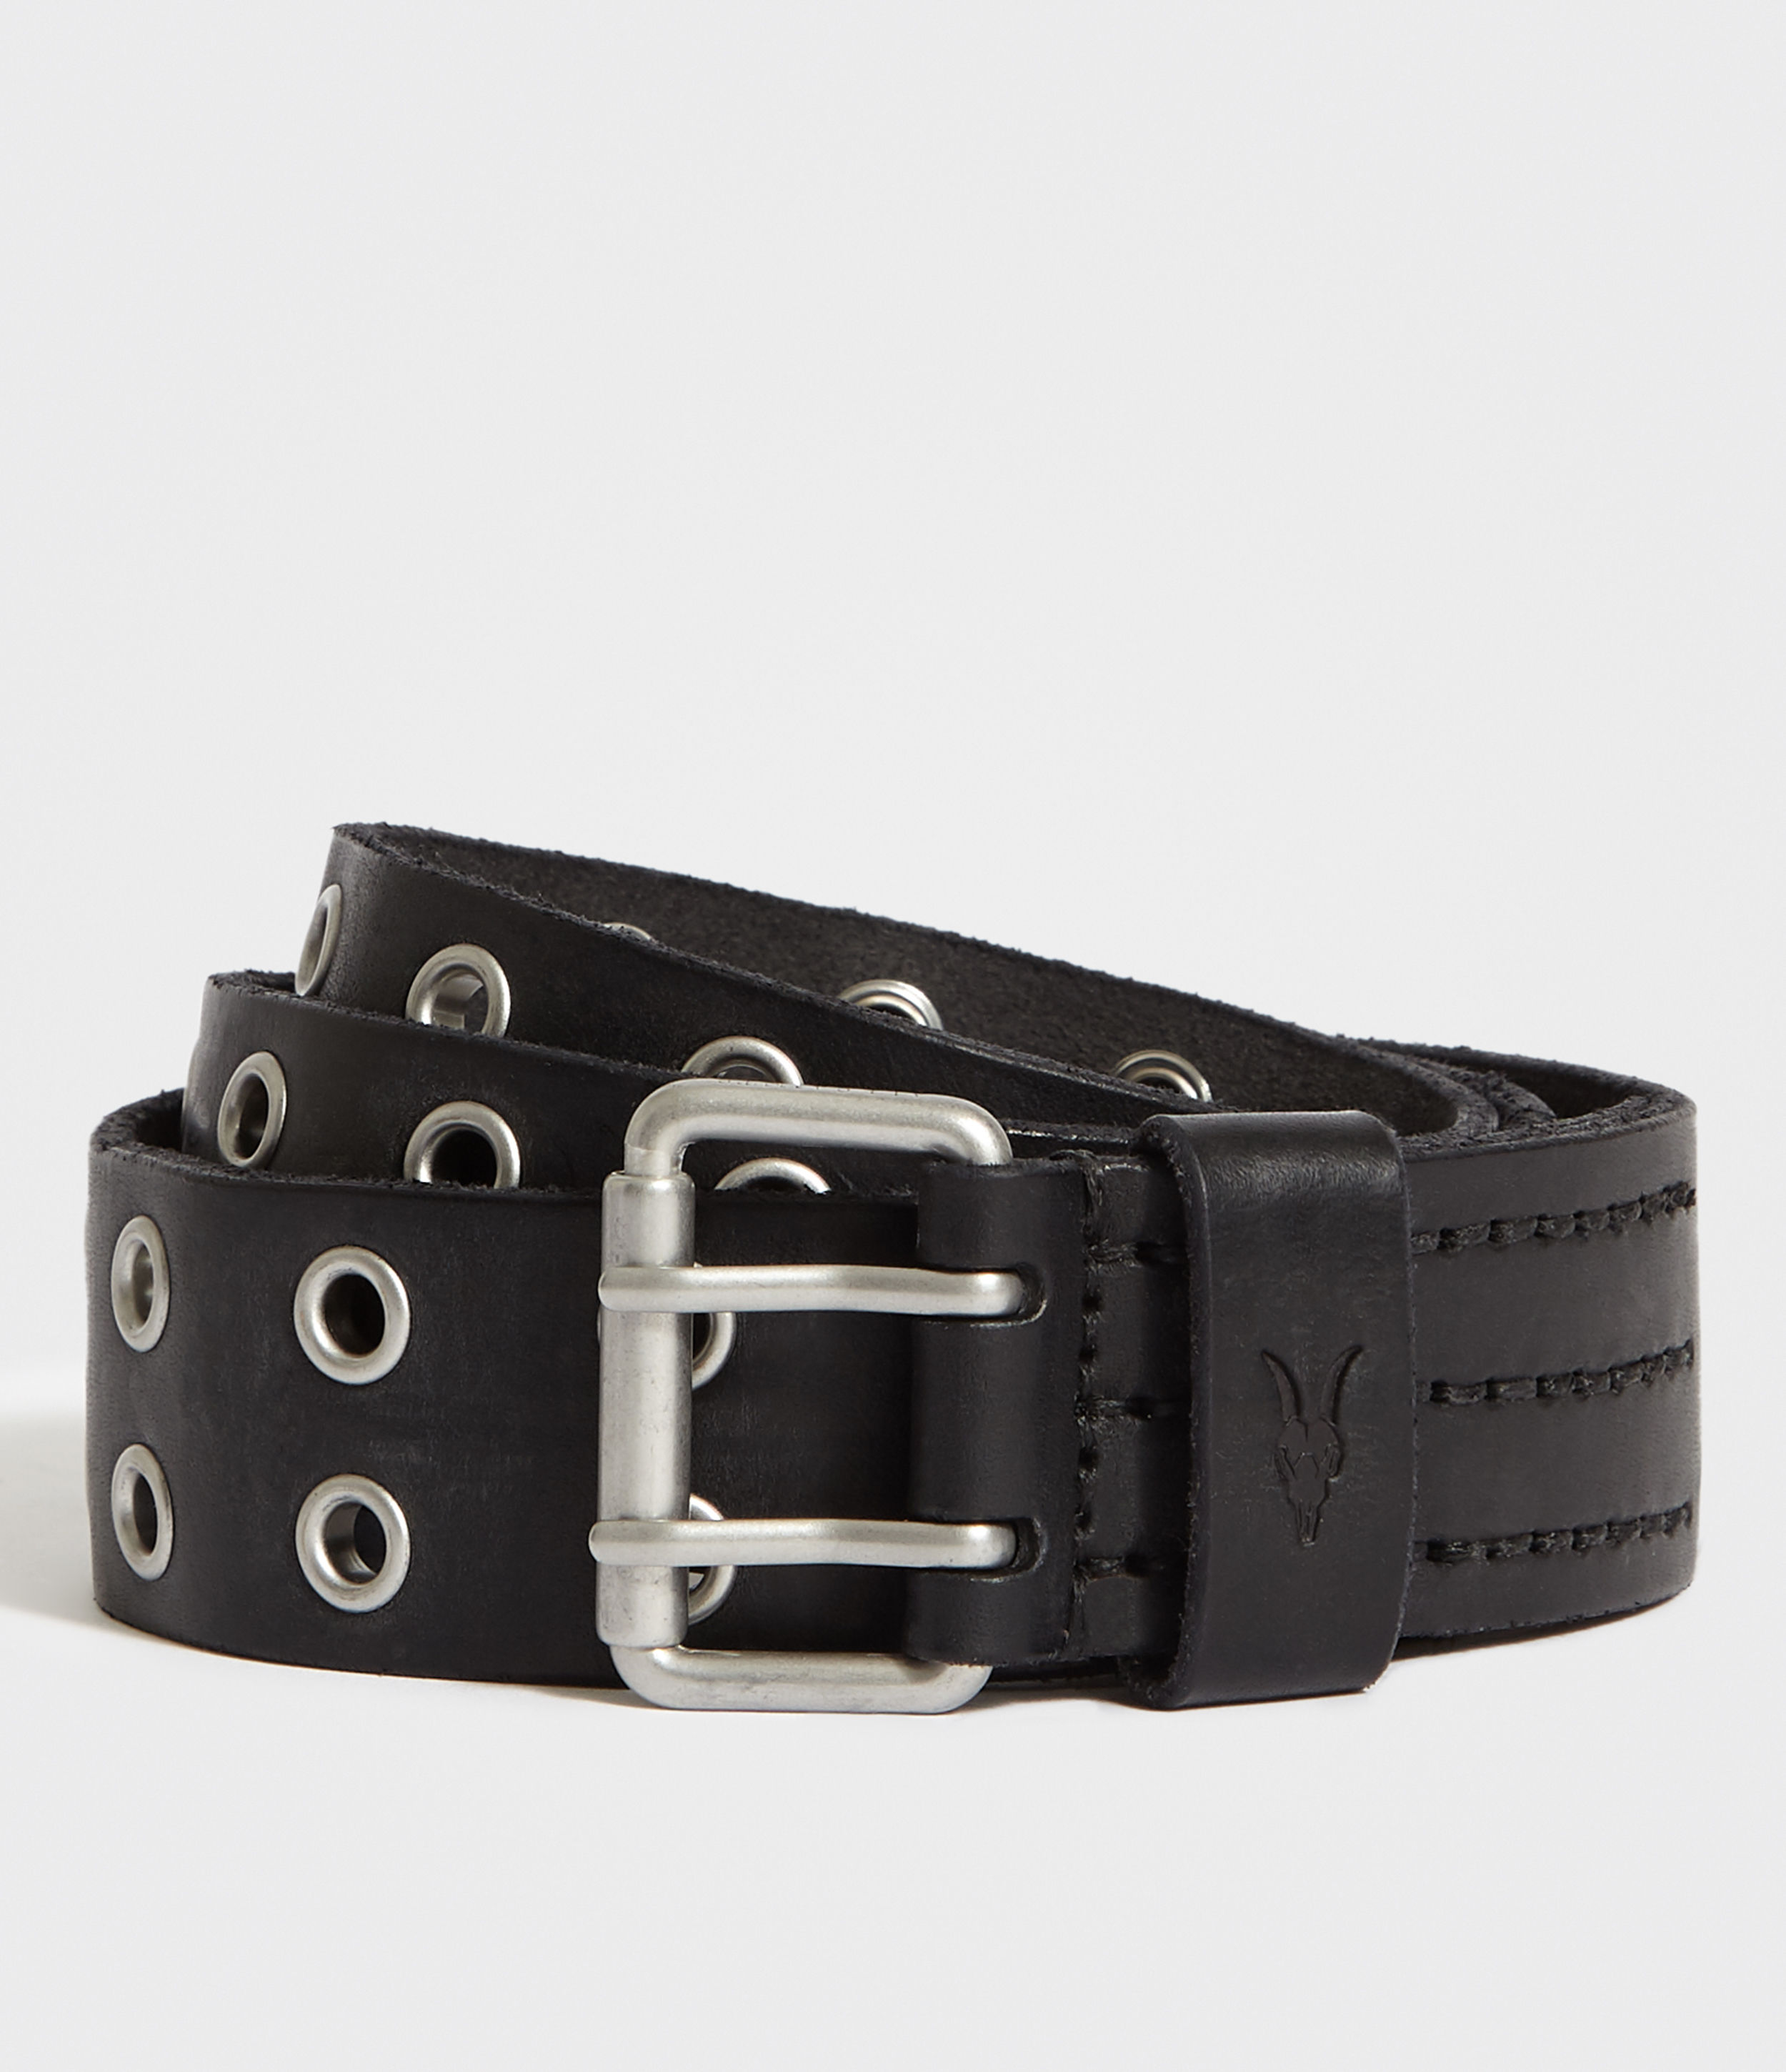 AllSaints Black Sturge Leather Belt